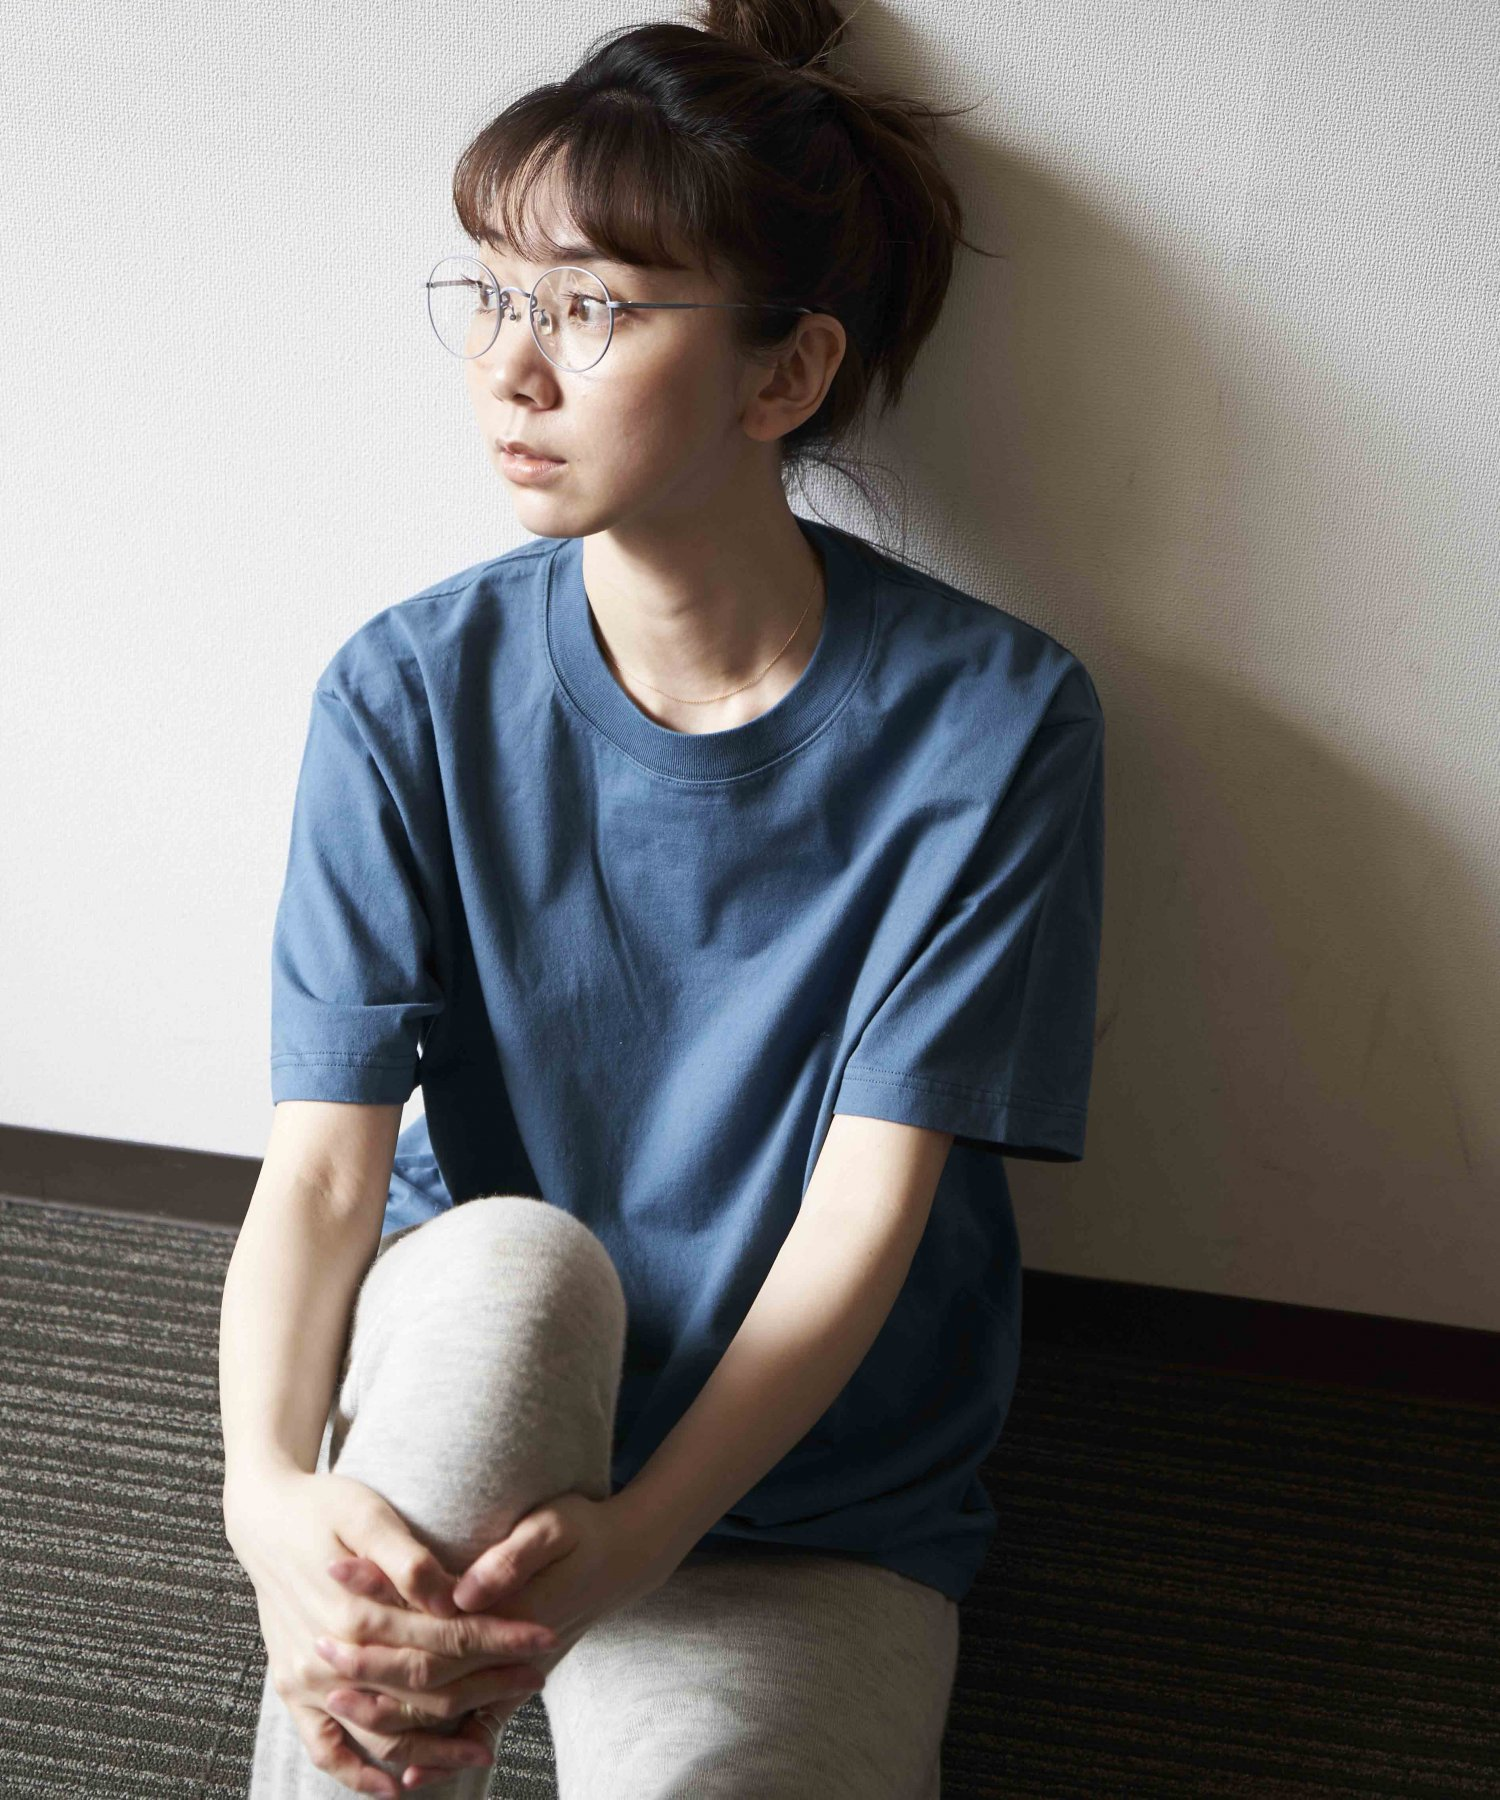 <img class='new_mark_img1' src='https://img.shop-pro.jp/img/new/icons15.gif' style='border:none;display:inline;margin:0px;padding:0px;width:auto;' />【REBIRTH PROJECT】SOUL COTTON T-shirt  BLU